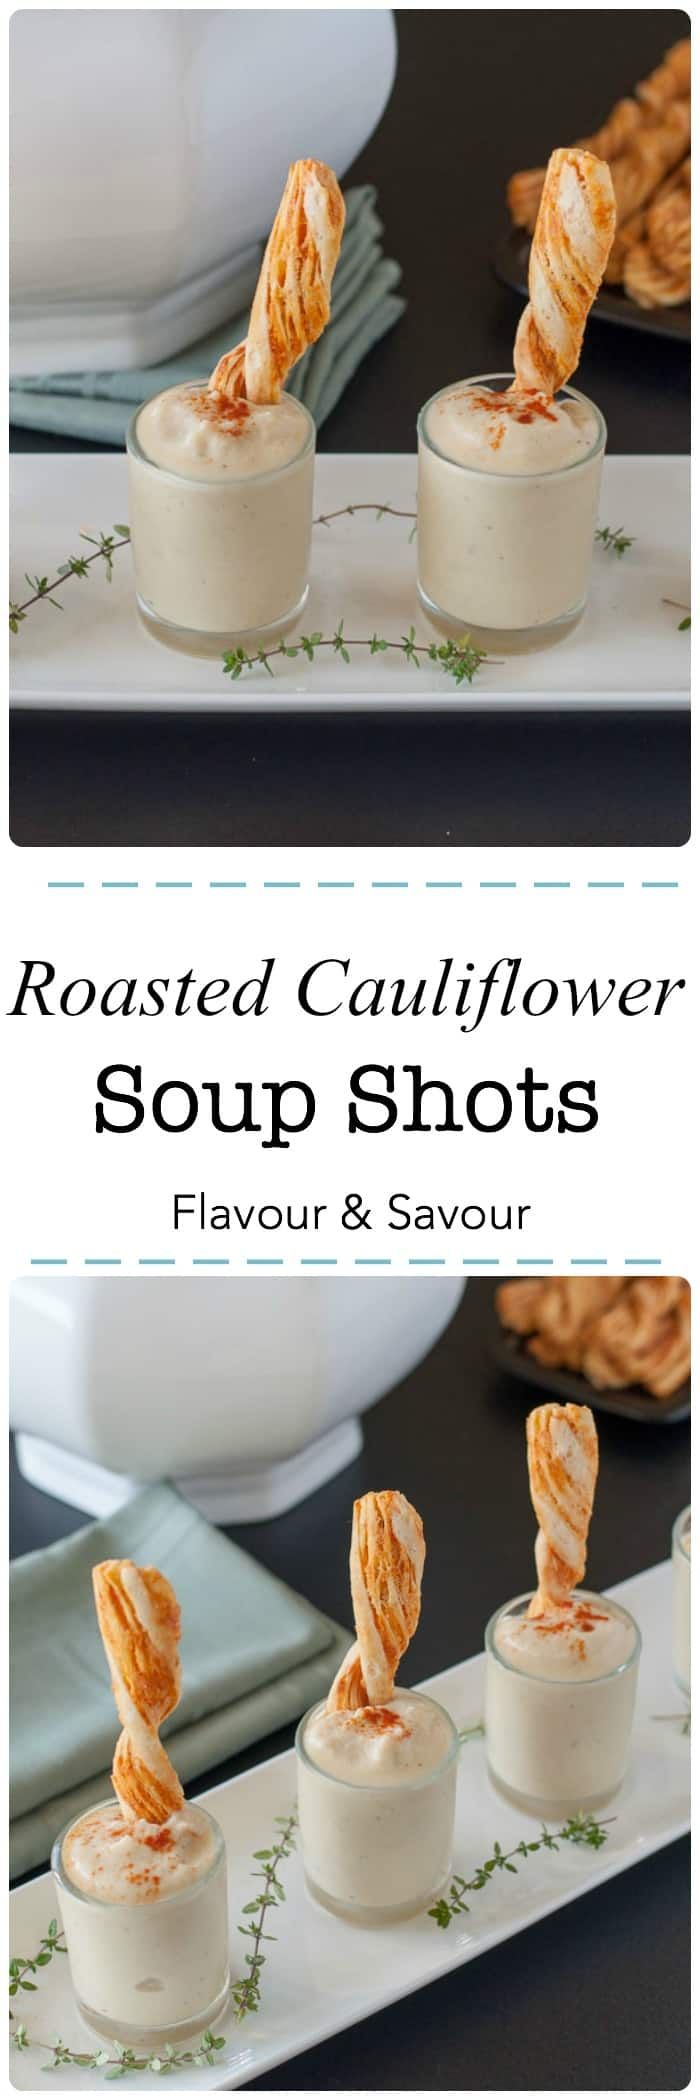 Roasted Cauliflower Soup Shots. A great way to start a meal, with just a taste. Kids love these too. Creamy without the cream. Paleo! Dairy-free and grain-free. |www.flavourandsavour.com